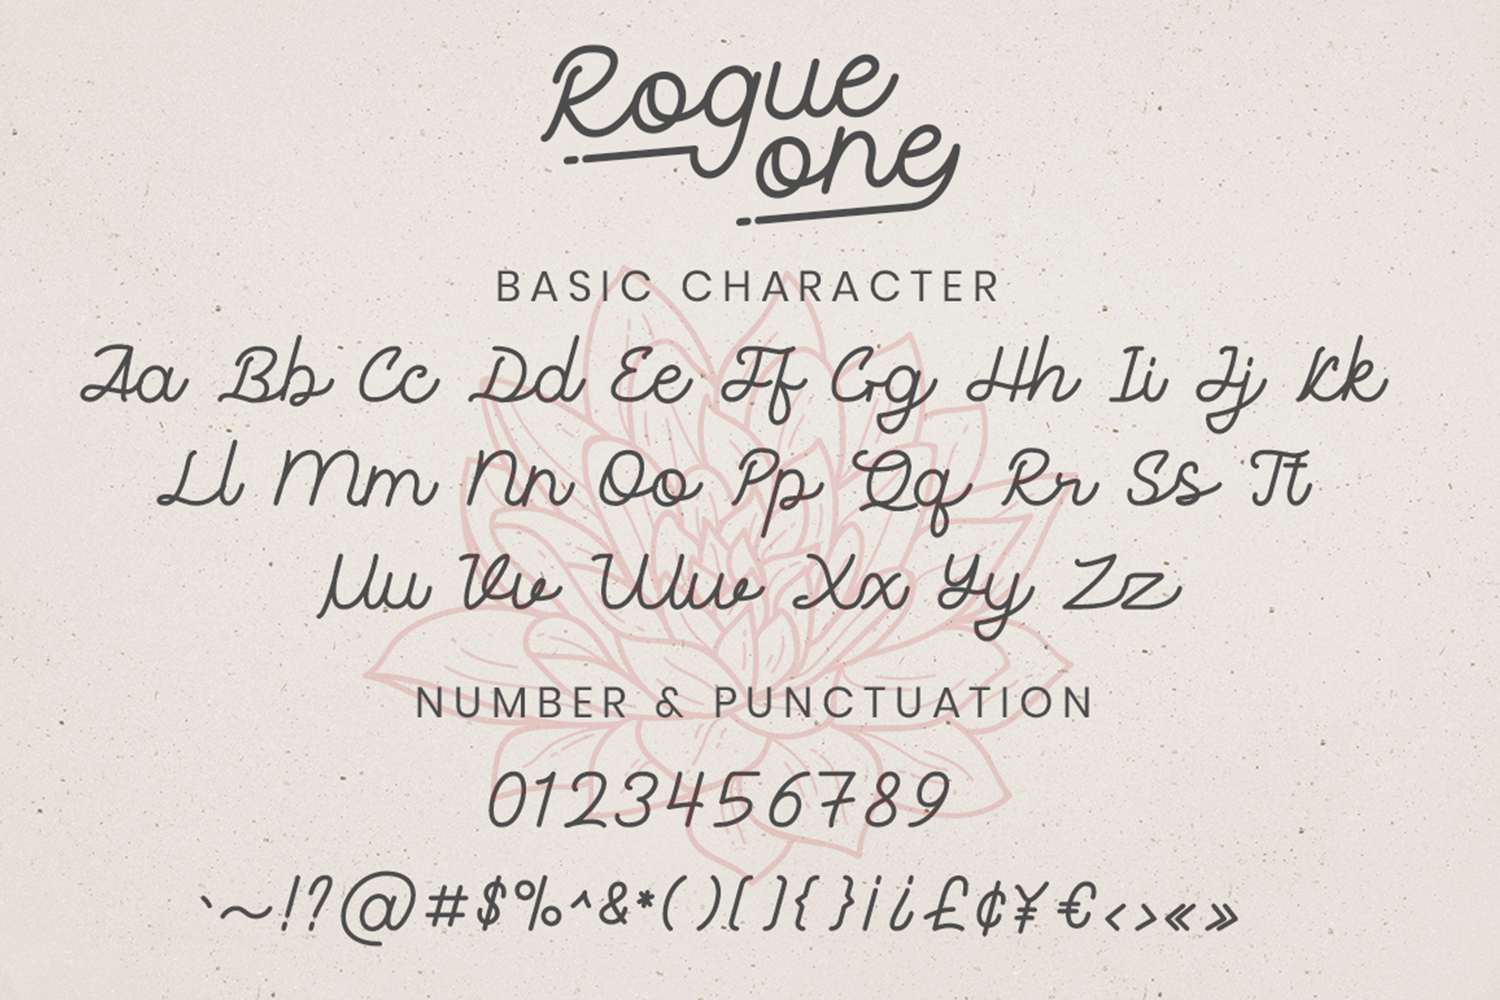 Rogue one example image 5